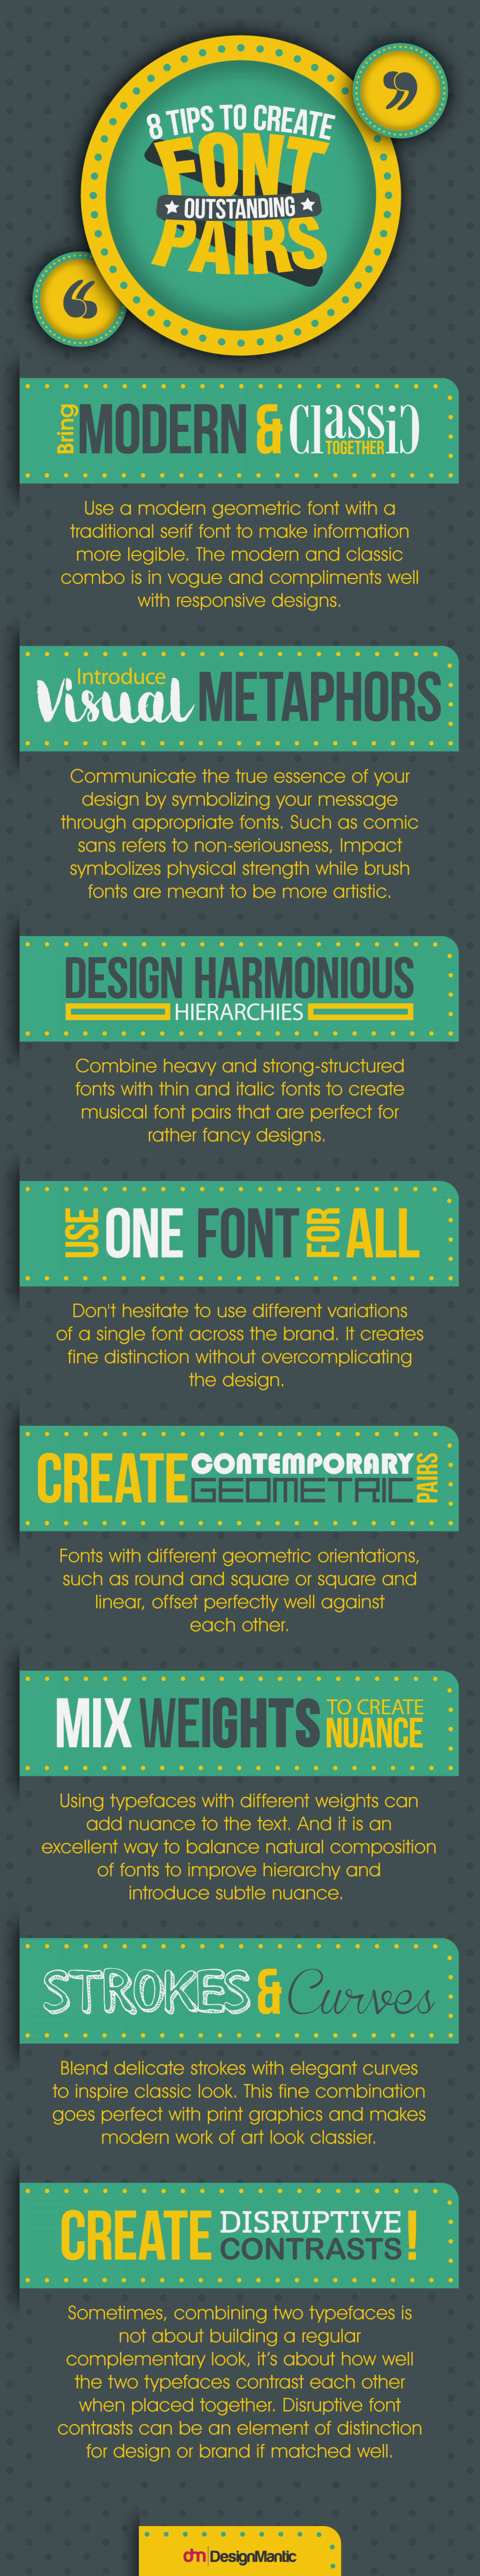 8 Tips to Create Outstanding Font Pairs Infographic